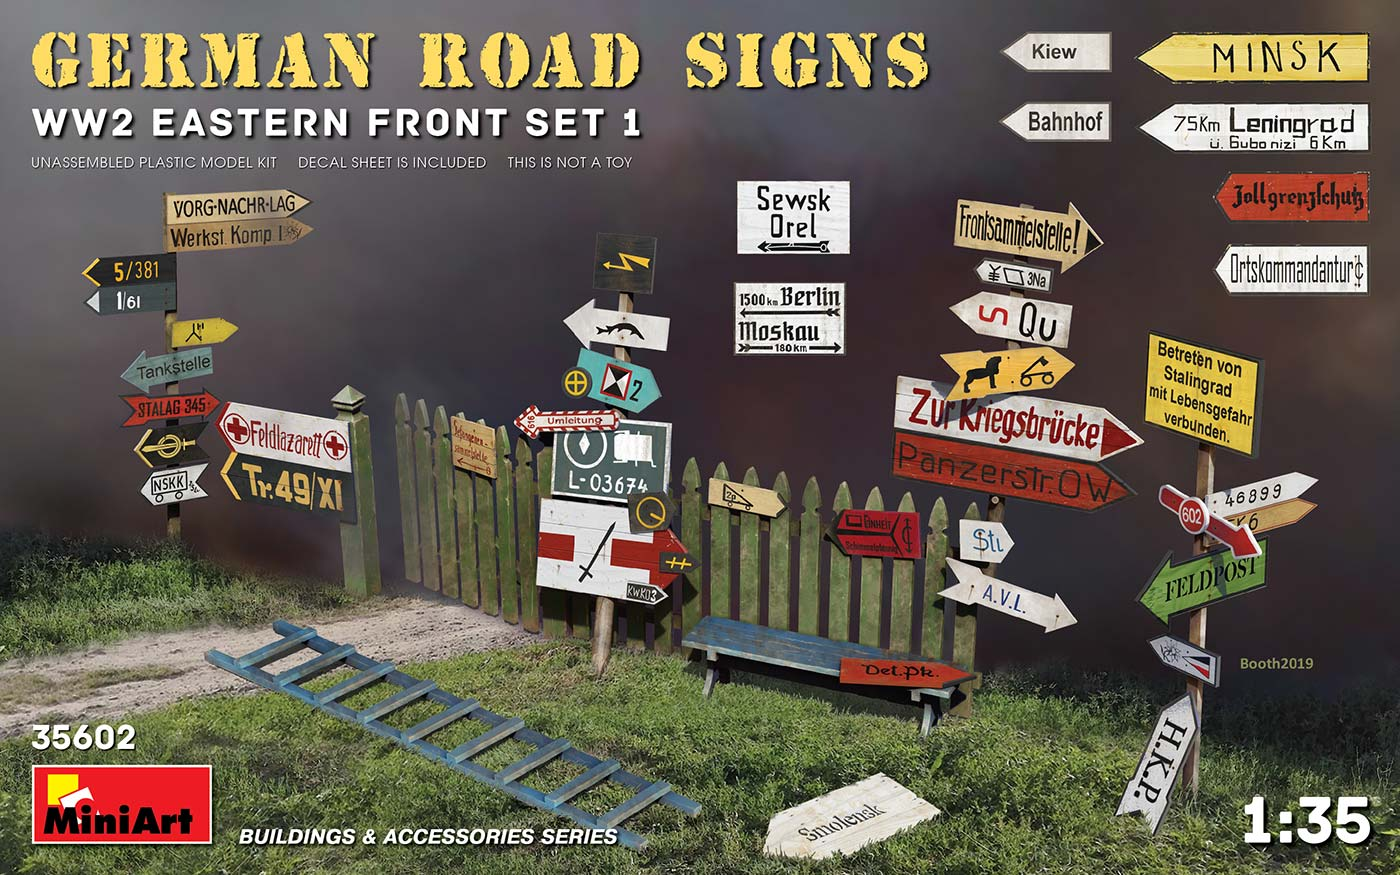 1/35 GERMAN ROAD SIGNS WW2 (EASTERN FRONT SET 1) 35602